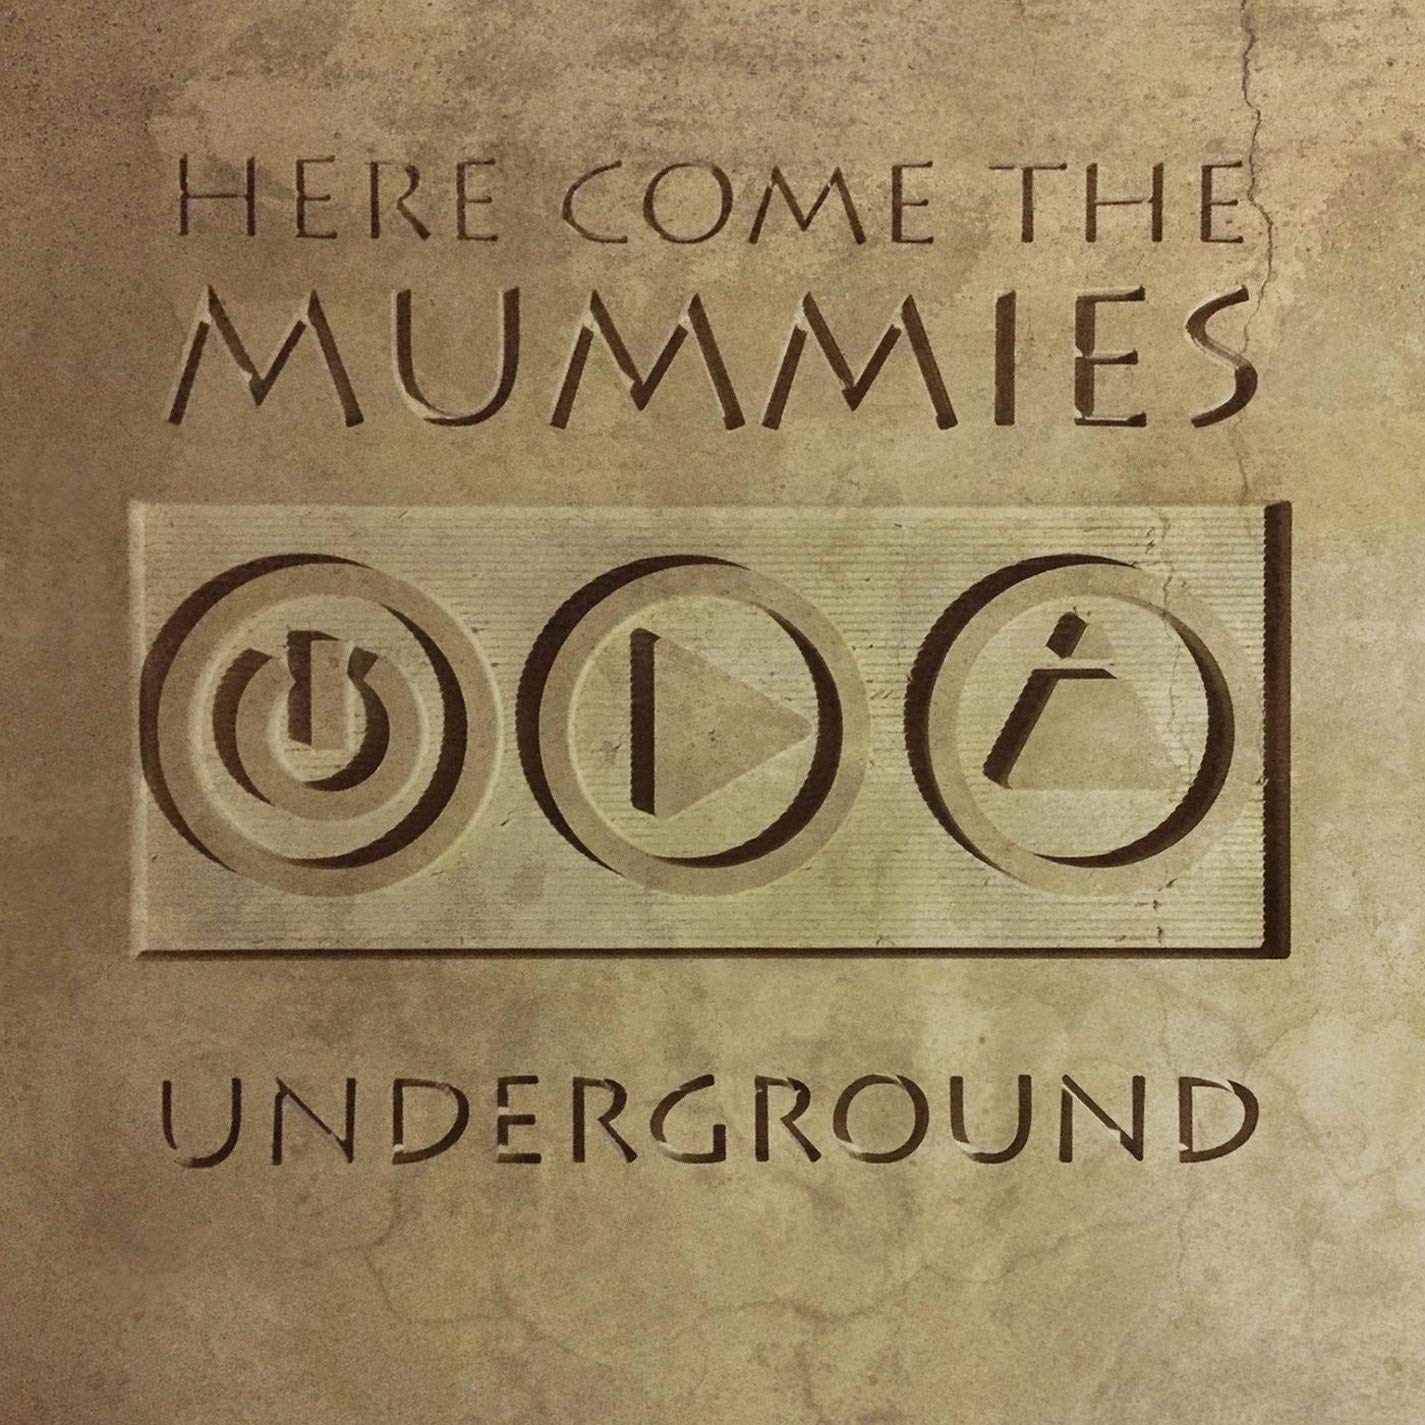 Here Come the Mummies - Underground   Daniel Bacigalupi